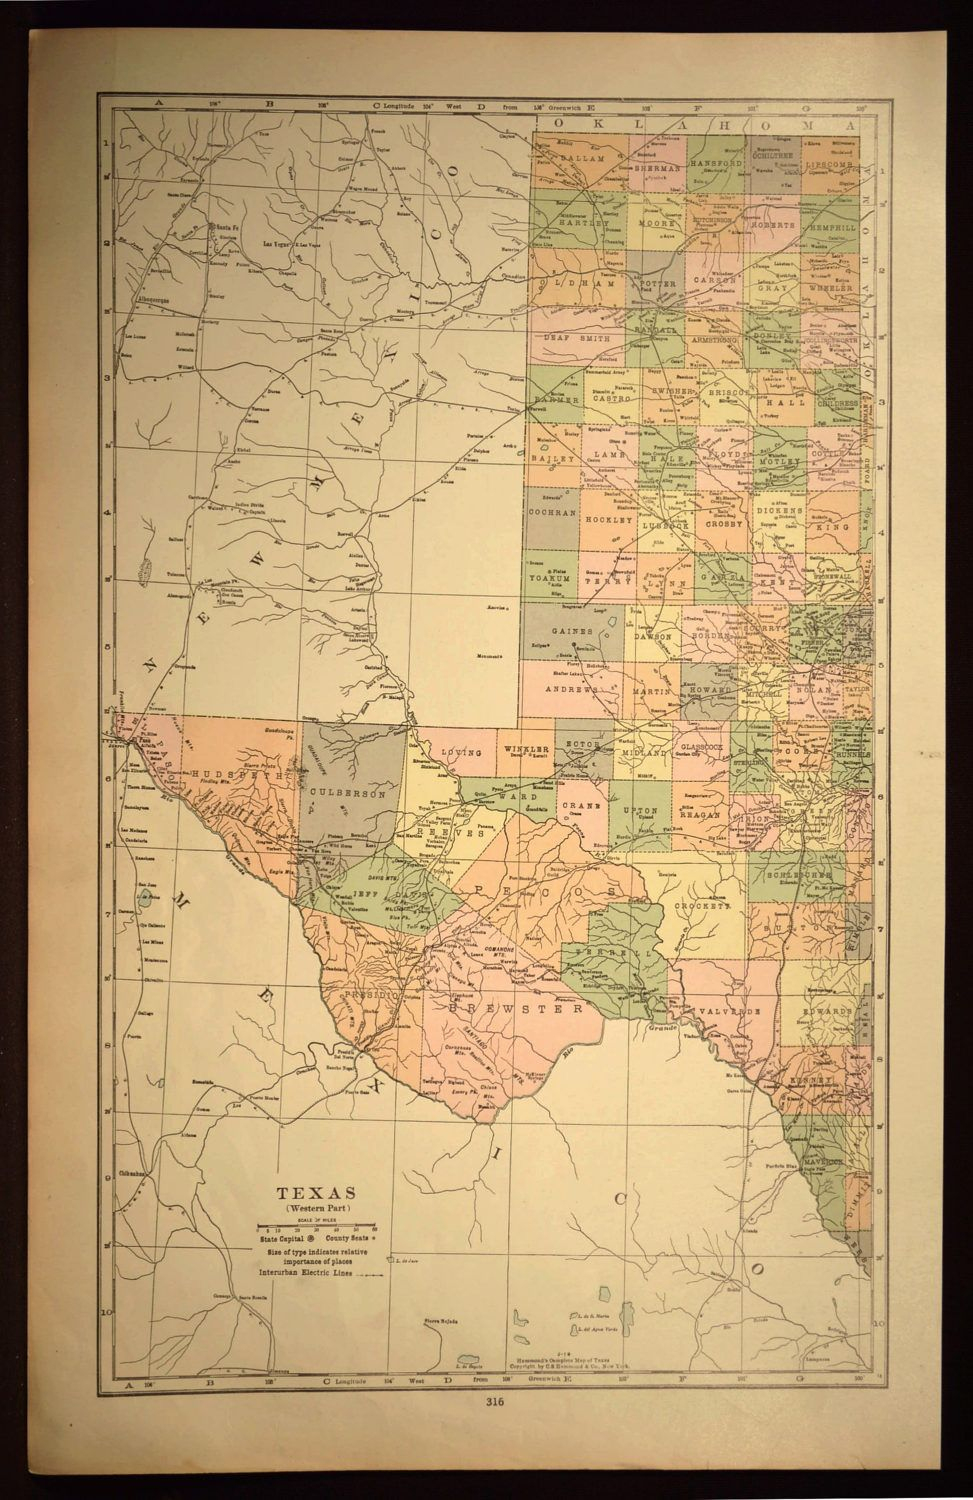 West Texas Map Of Texas Wall Art Decor Large Western Gift Idea Gift - Texas Map Wall Decor